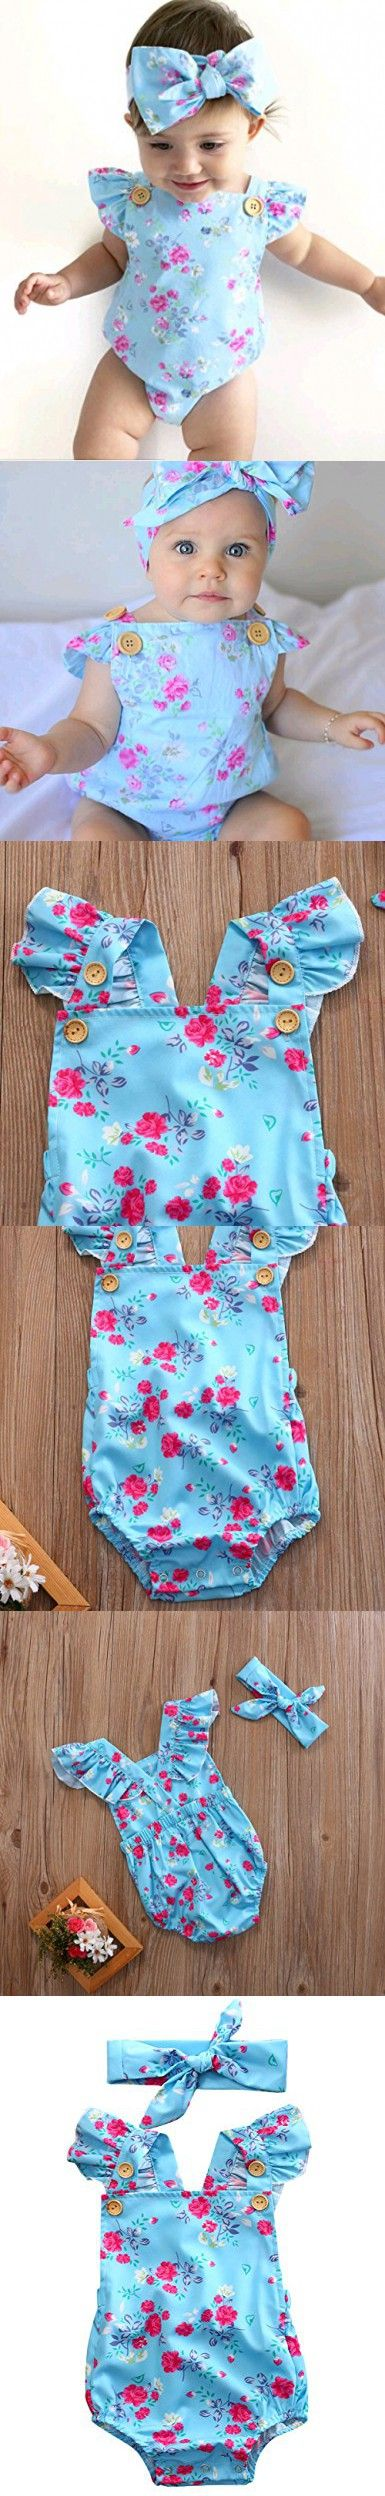 Baby Girls' Full Flower Print Buttons Ruffles Romper Bodysuit with Headband (70(0-6M), Blue(with headband))